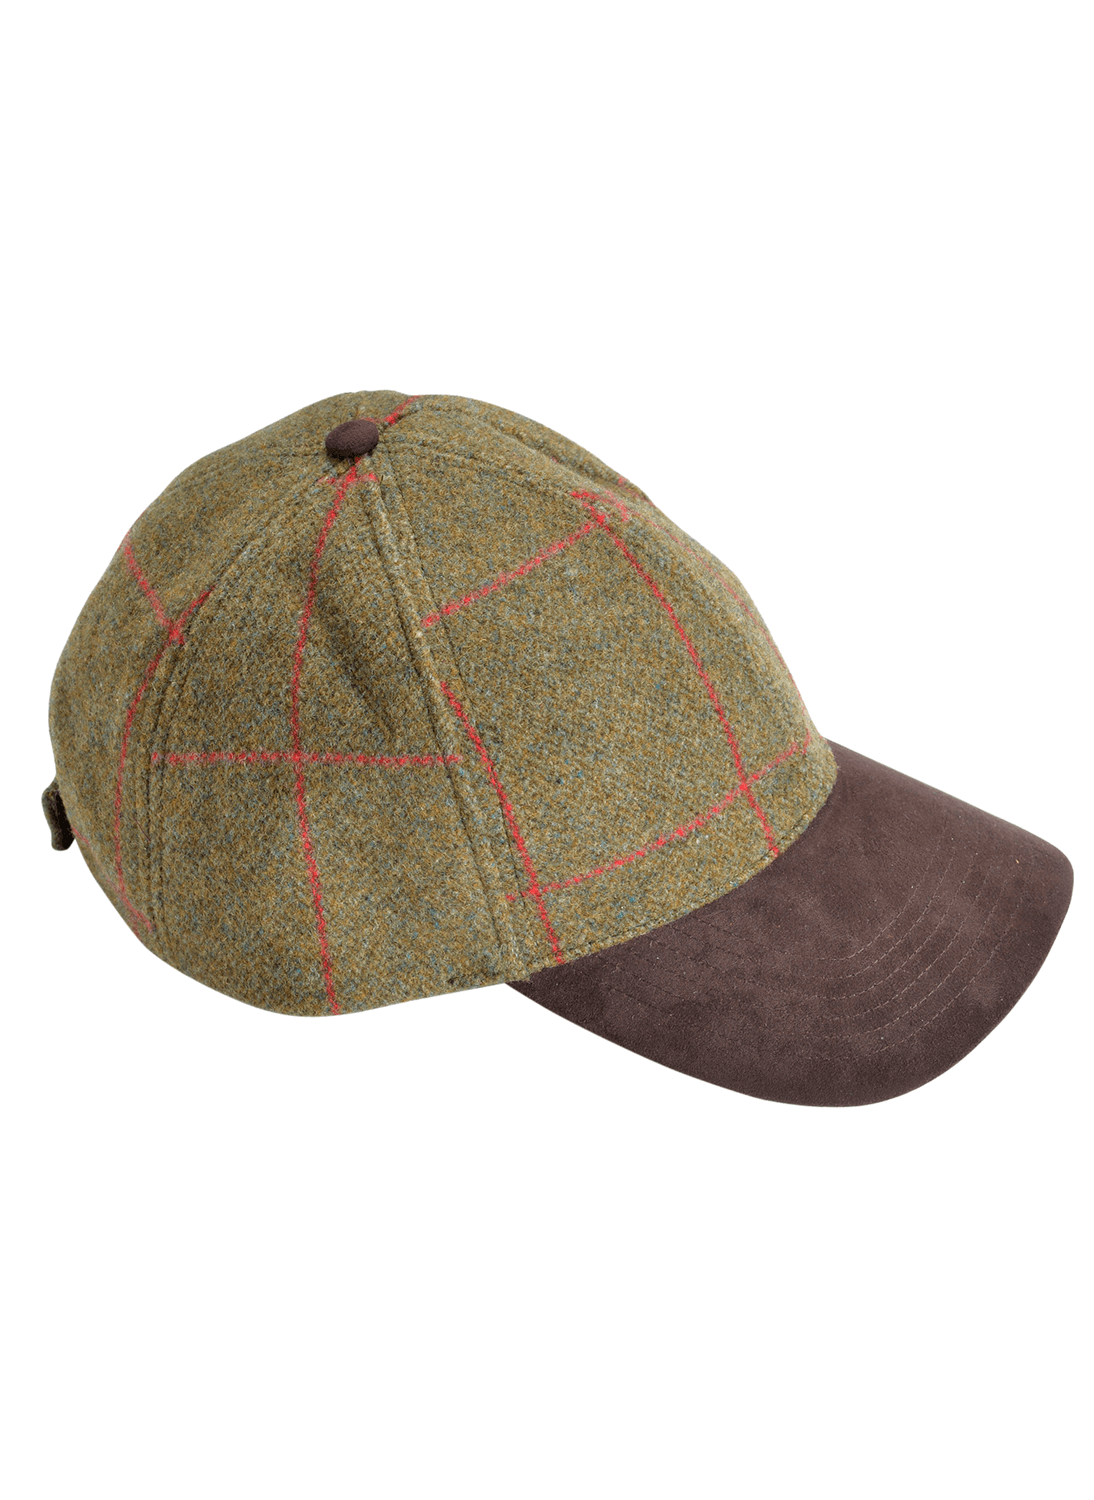 613d3a413ae4a Alan Paine Combrook Sage Tweed Baseball Cap - Bredon Hill Country